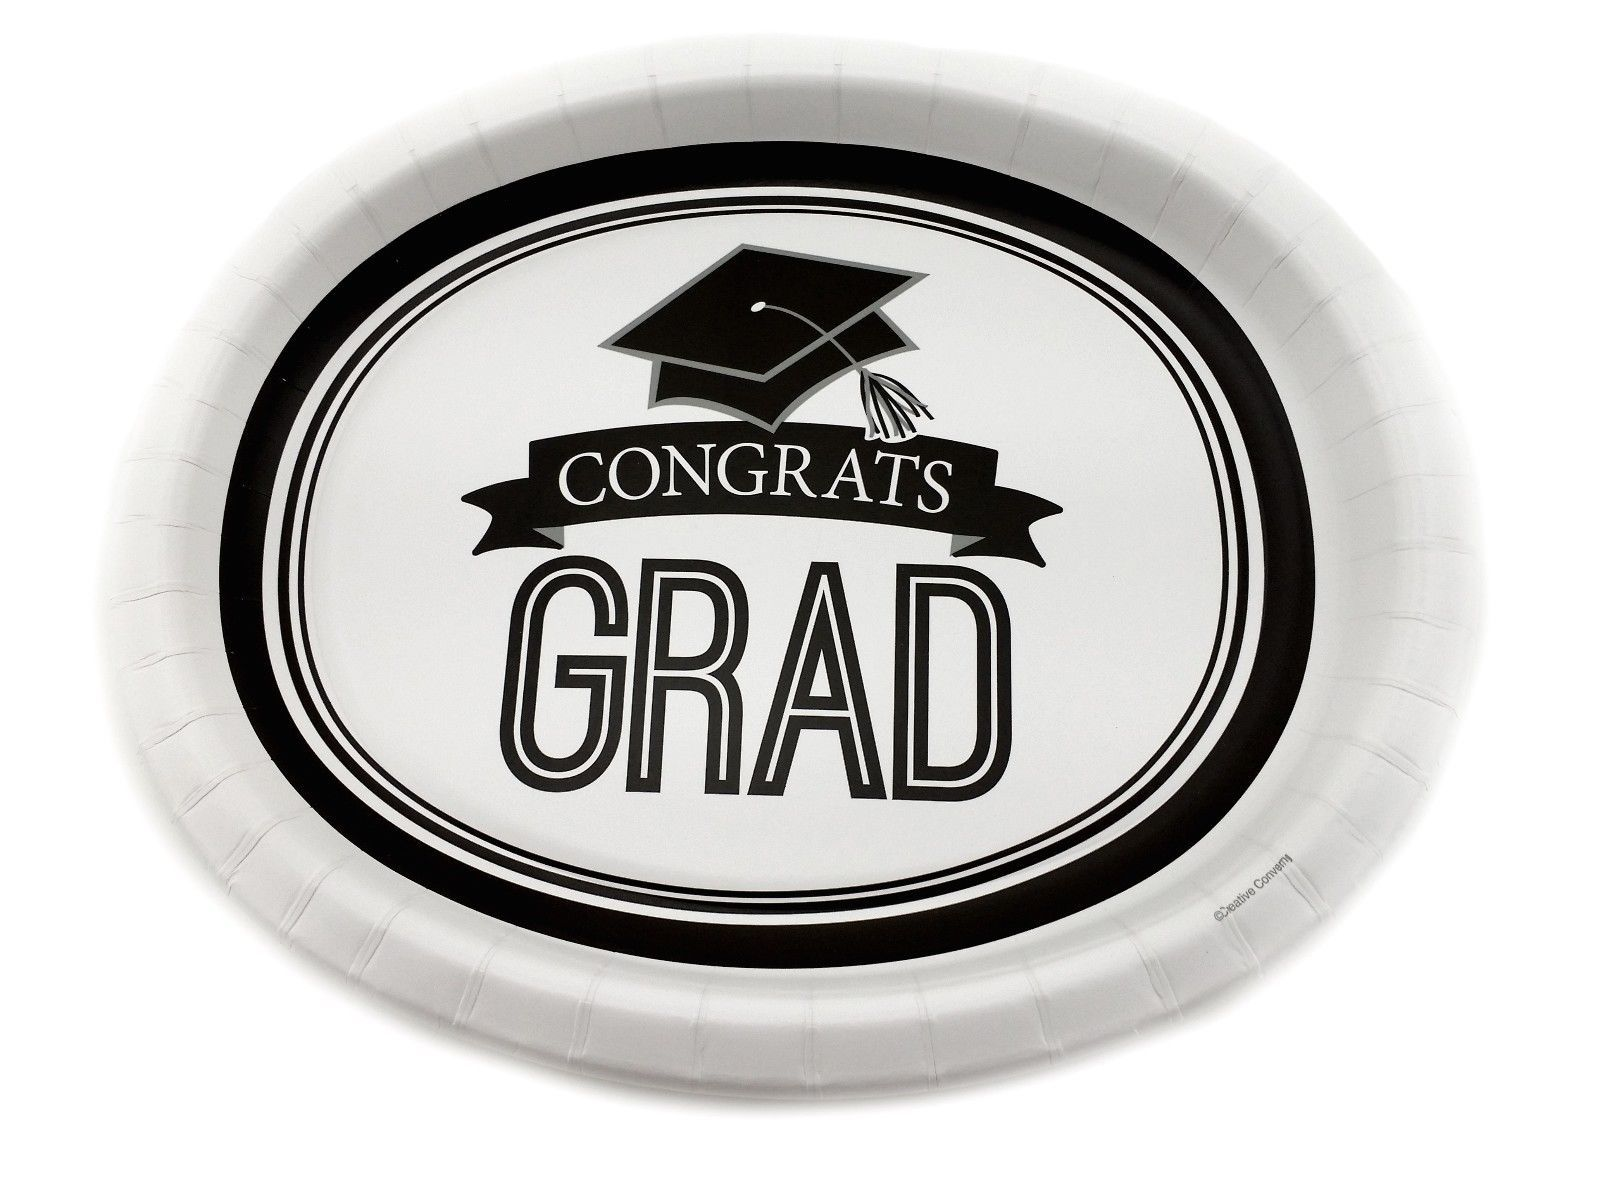 "8 Plates 10""x12"" Oval Paper Dinner Plates Wax Coated - Congrats Grad"